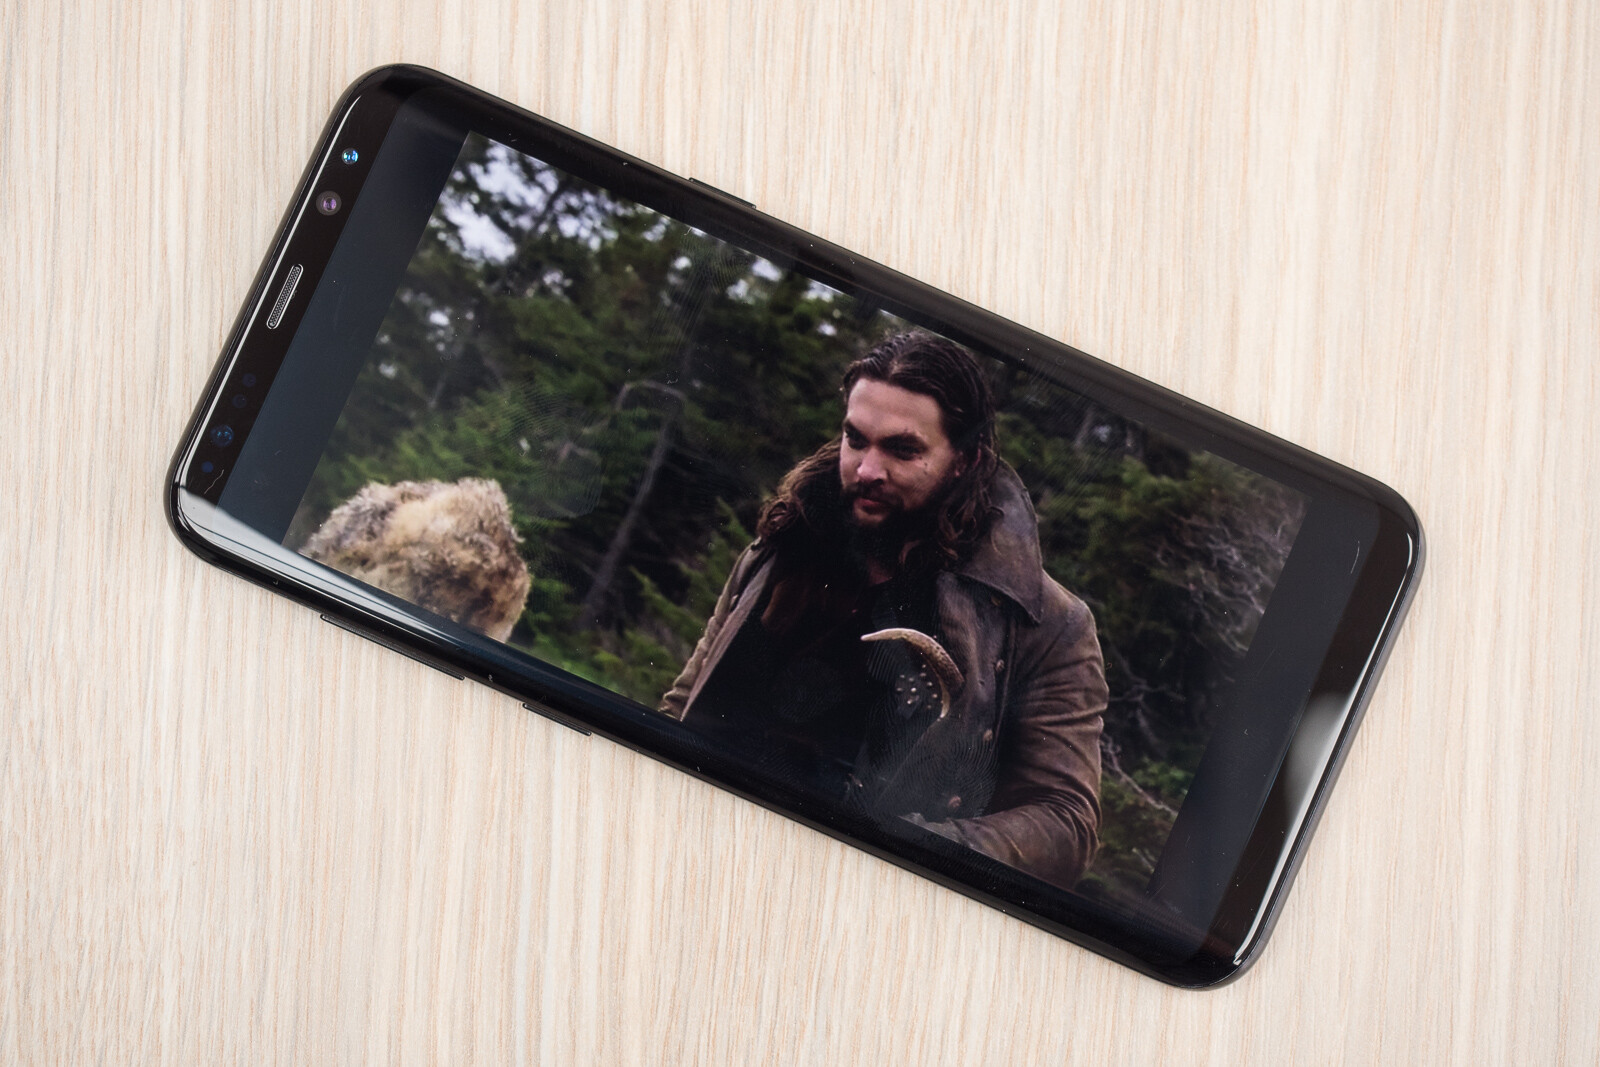 Netflix's Frontier is shot in 2:1, but starts letterboxed